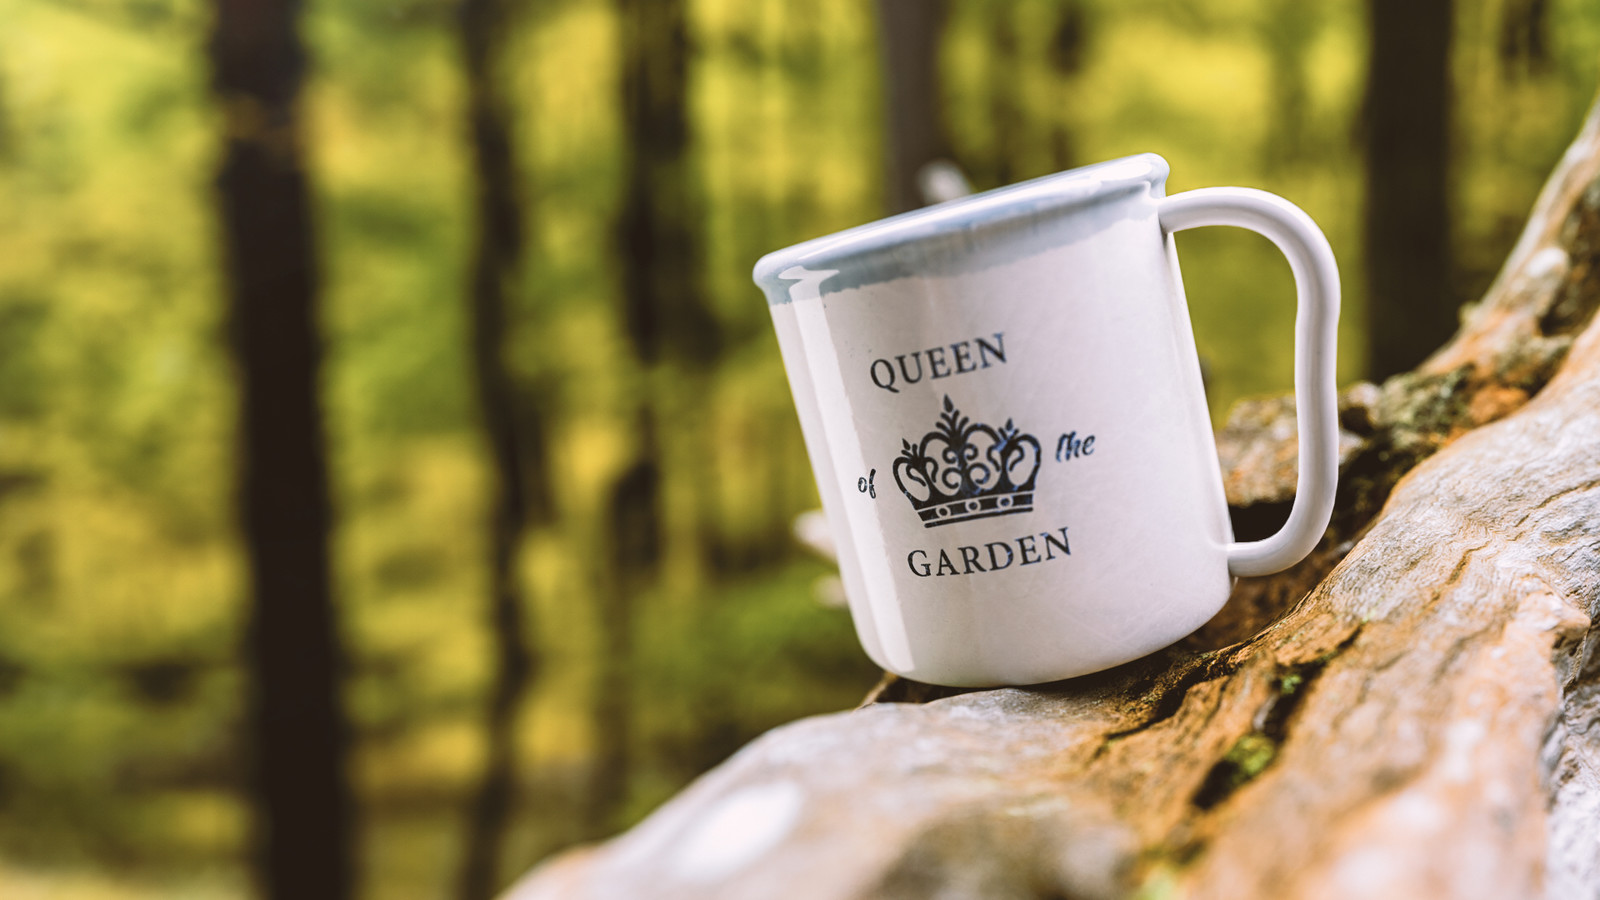 Queen of the Garden - My wife's favourite mug reimagined in C4D